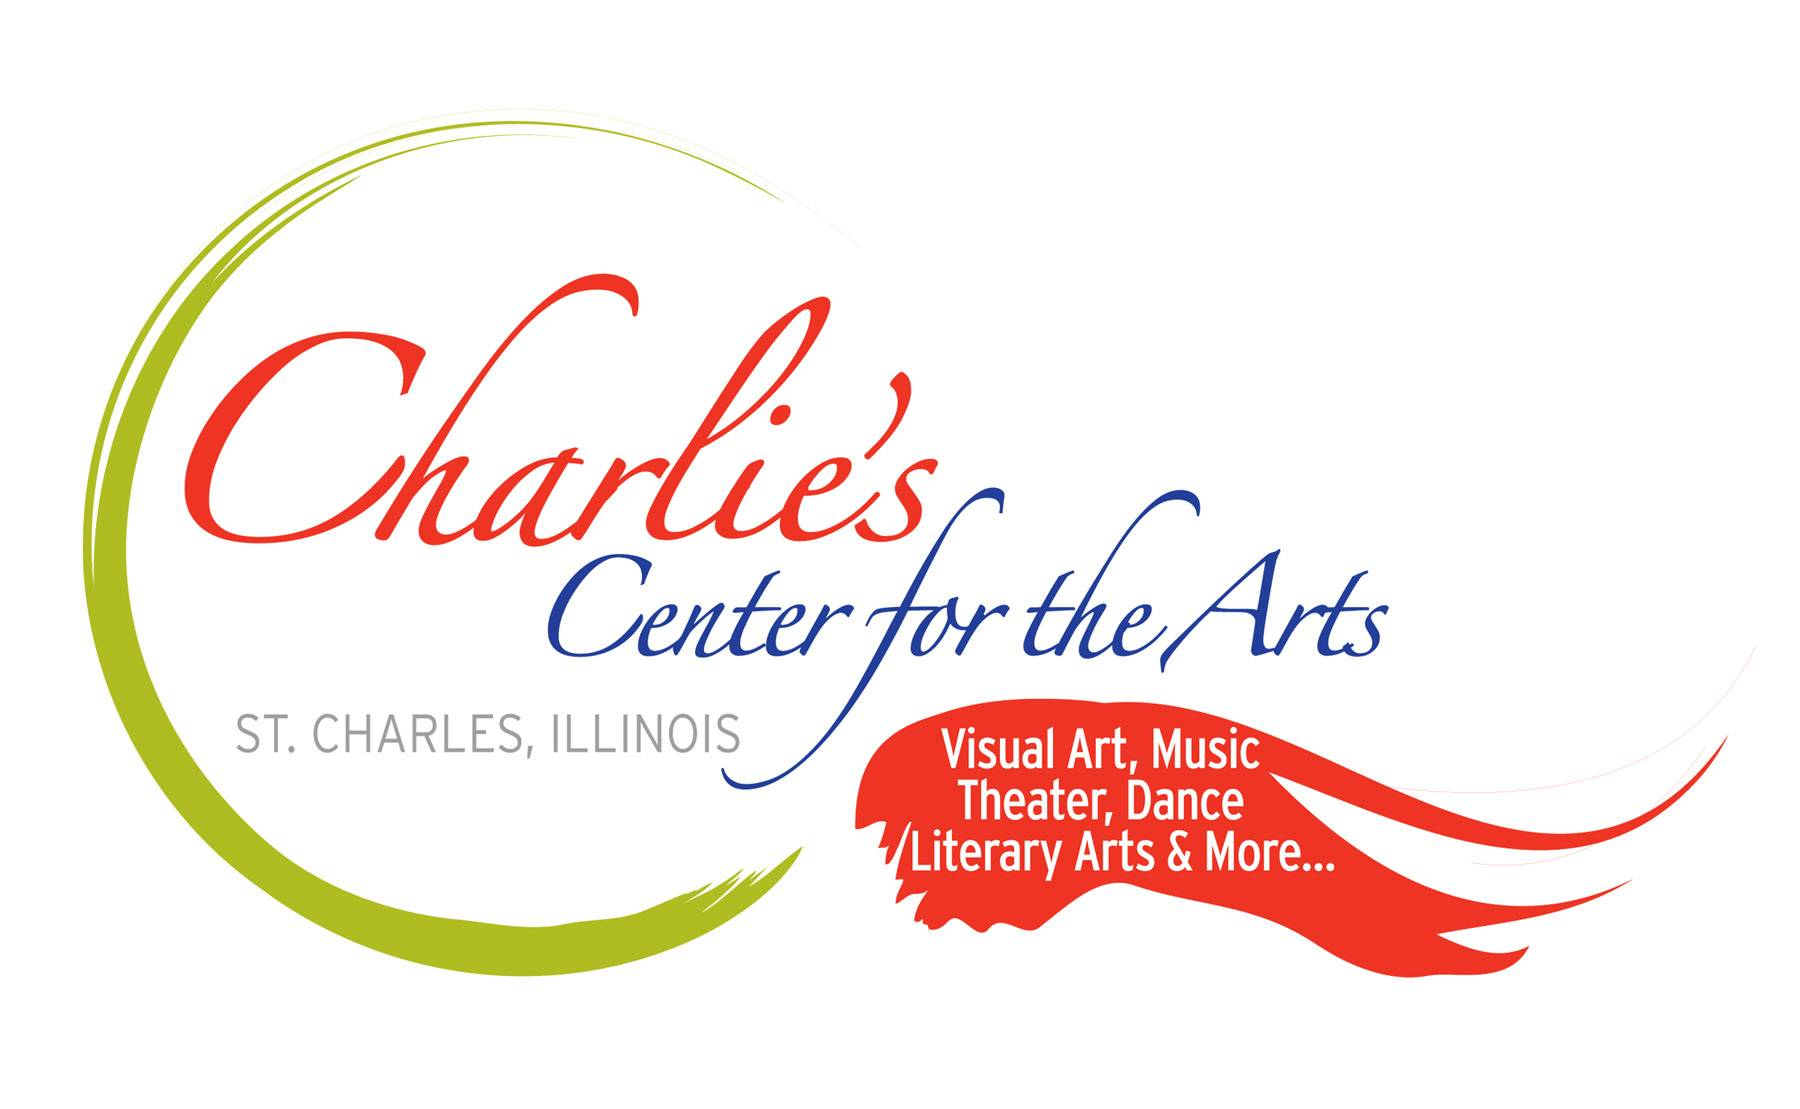 Charlie's is ALL of the ARTS, ALL over TOWN